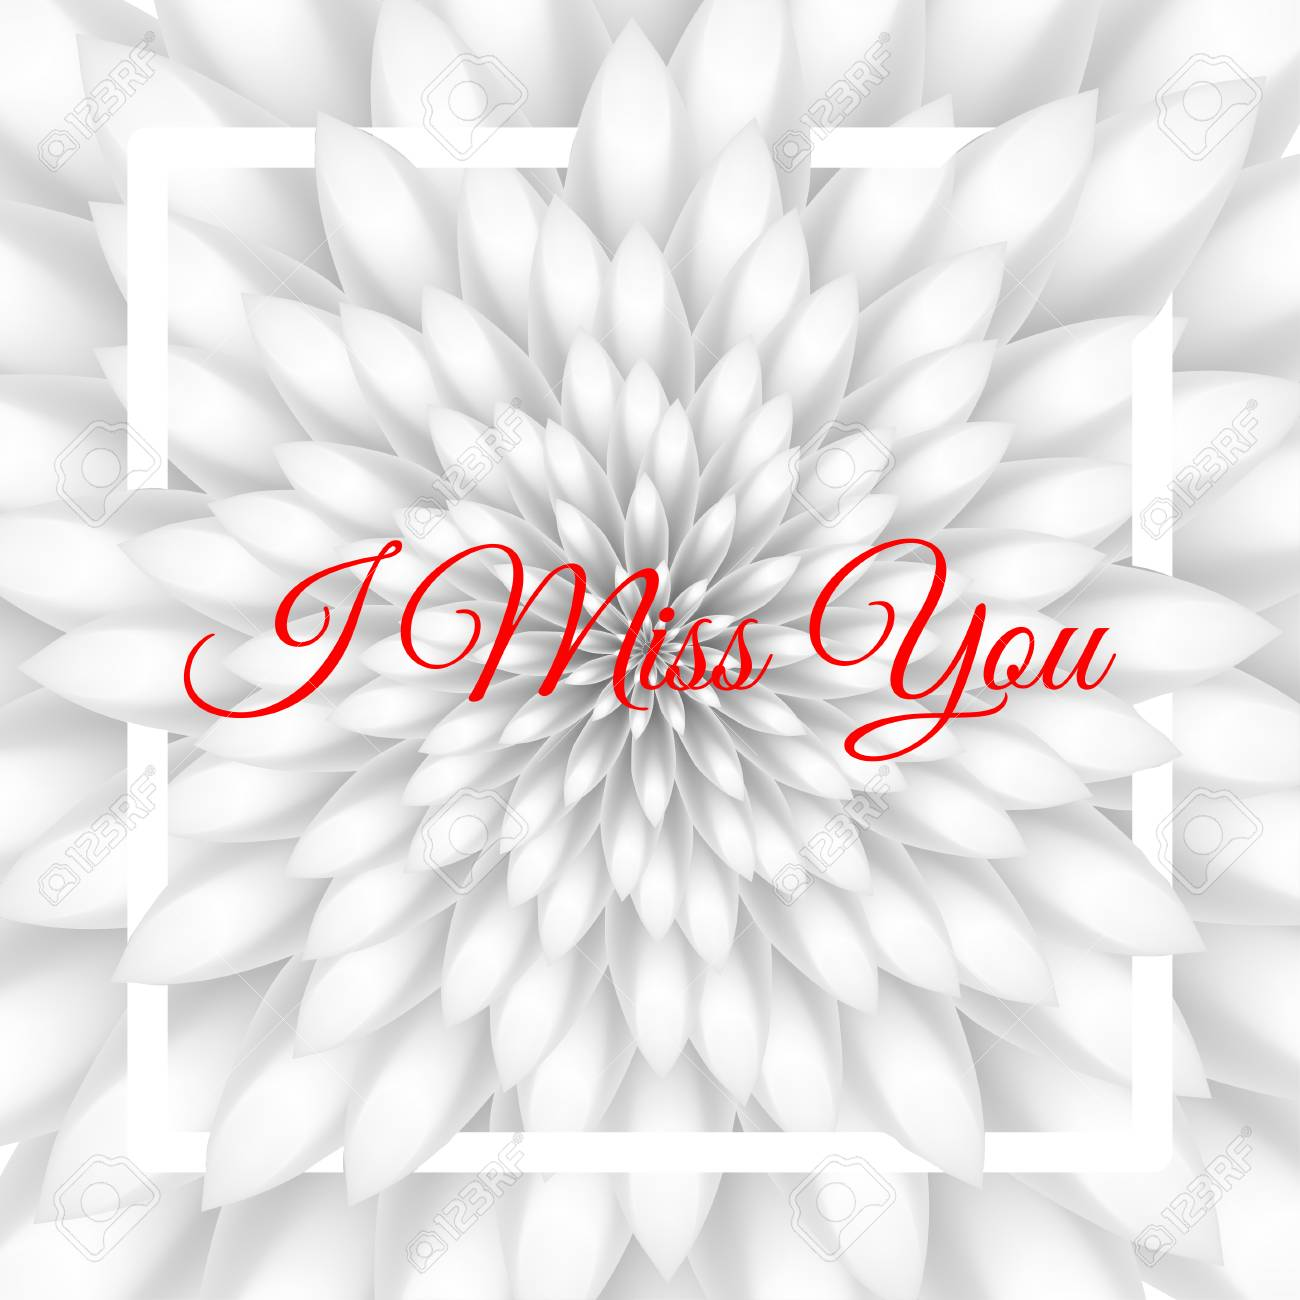 I Miss You Card Greeting Card With White Chrysanthemum In The